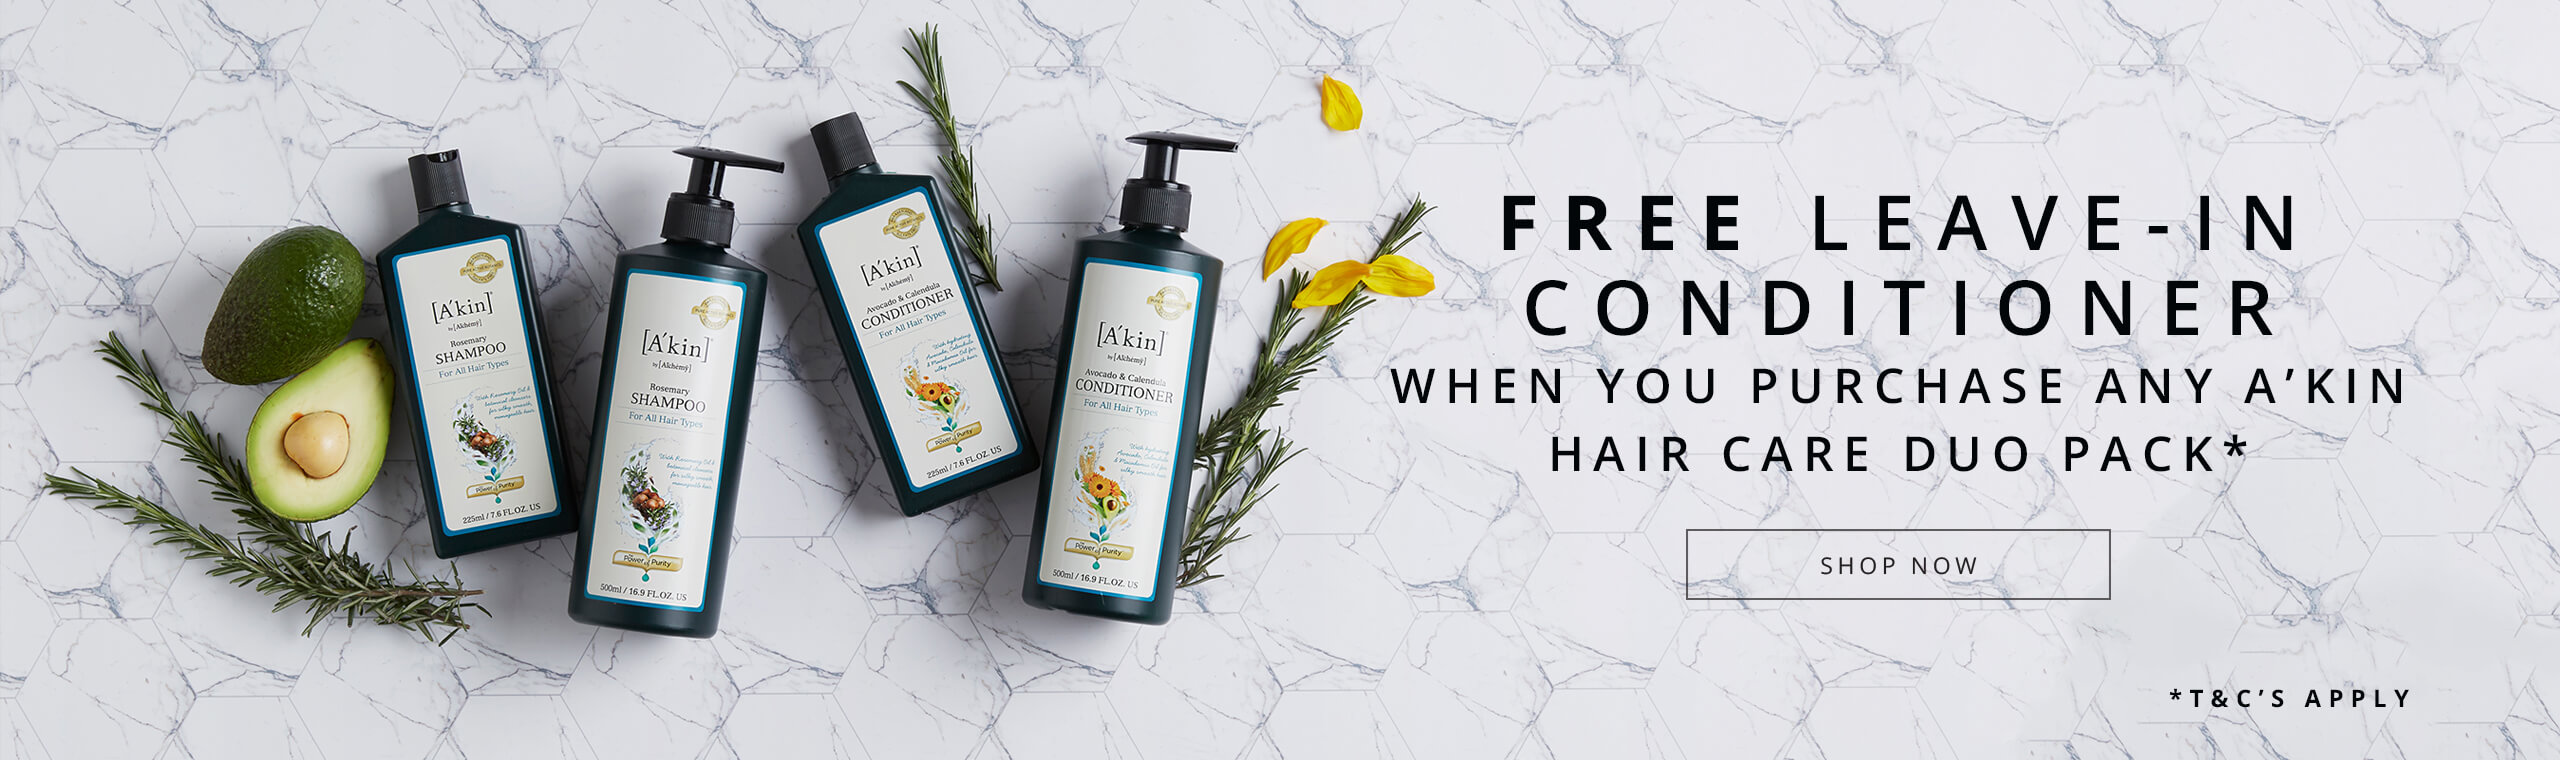 Free Leave-In Conditioner when you purchase any A'kin hair care duo pack